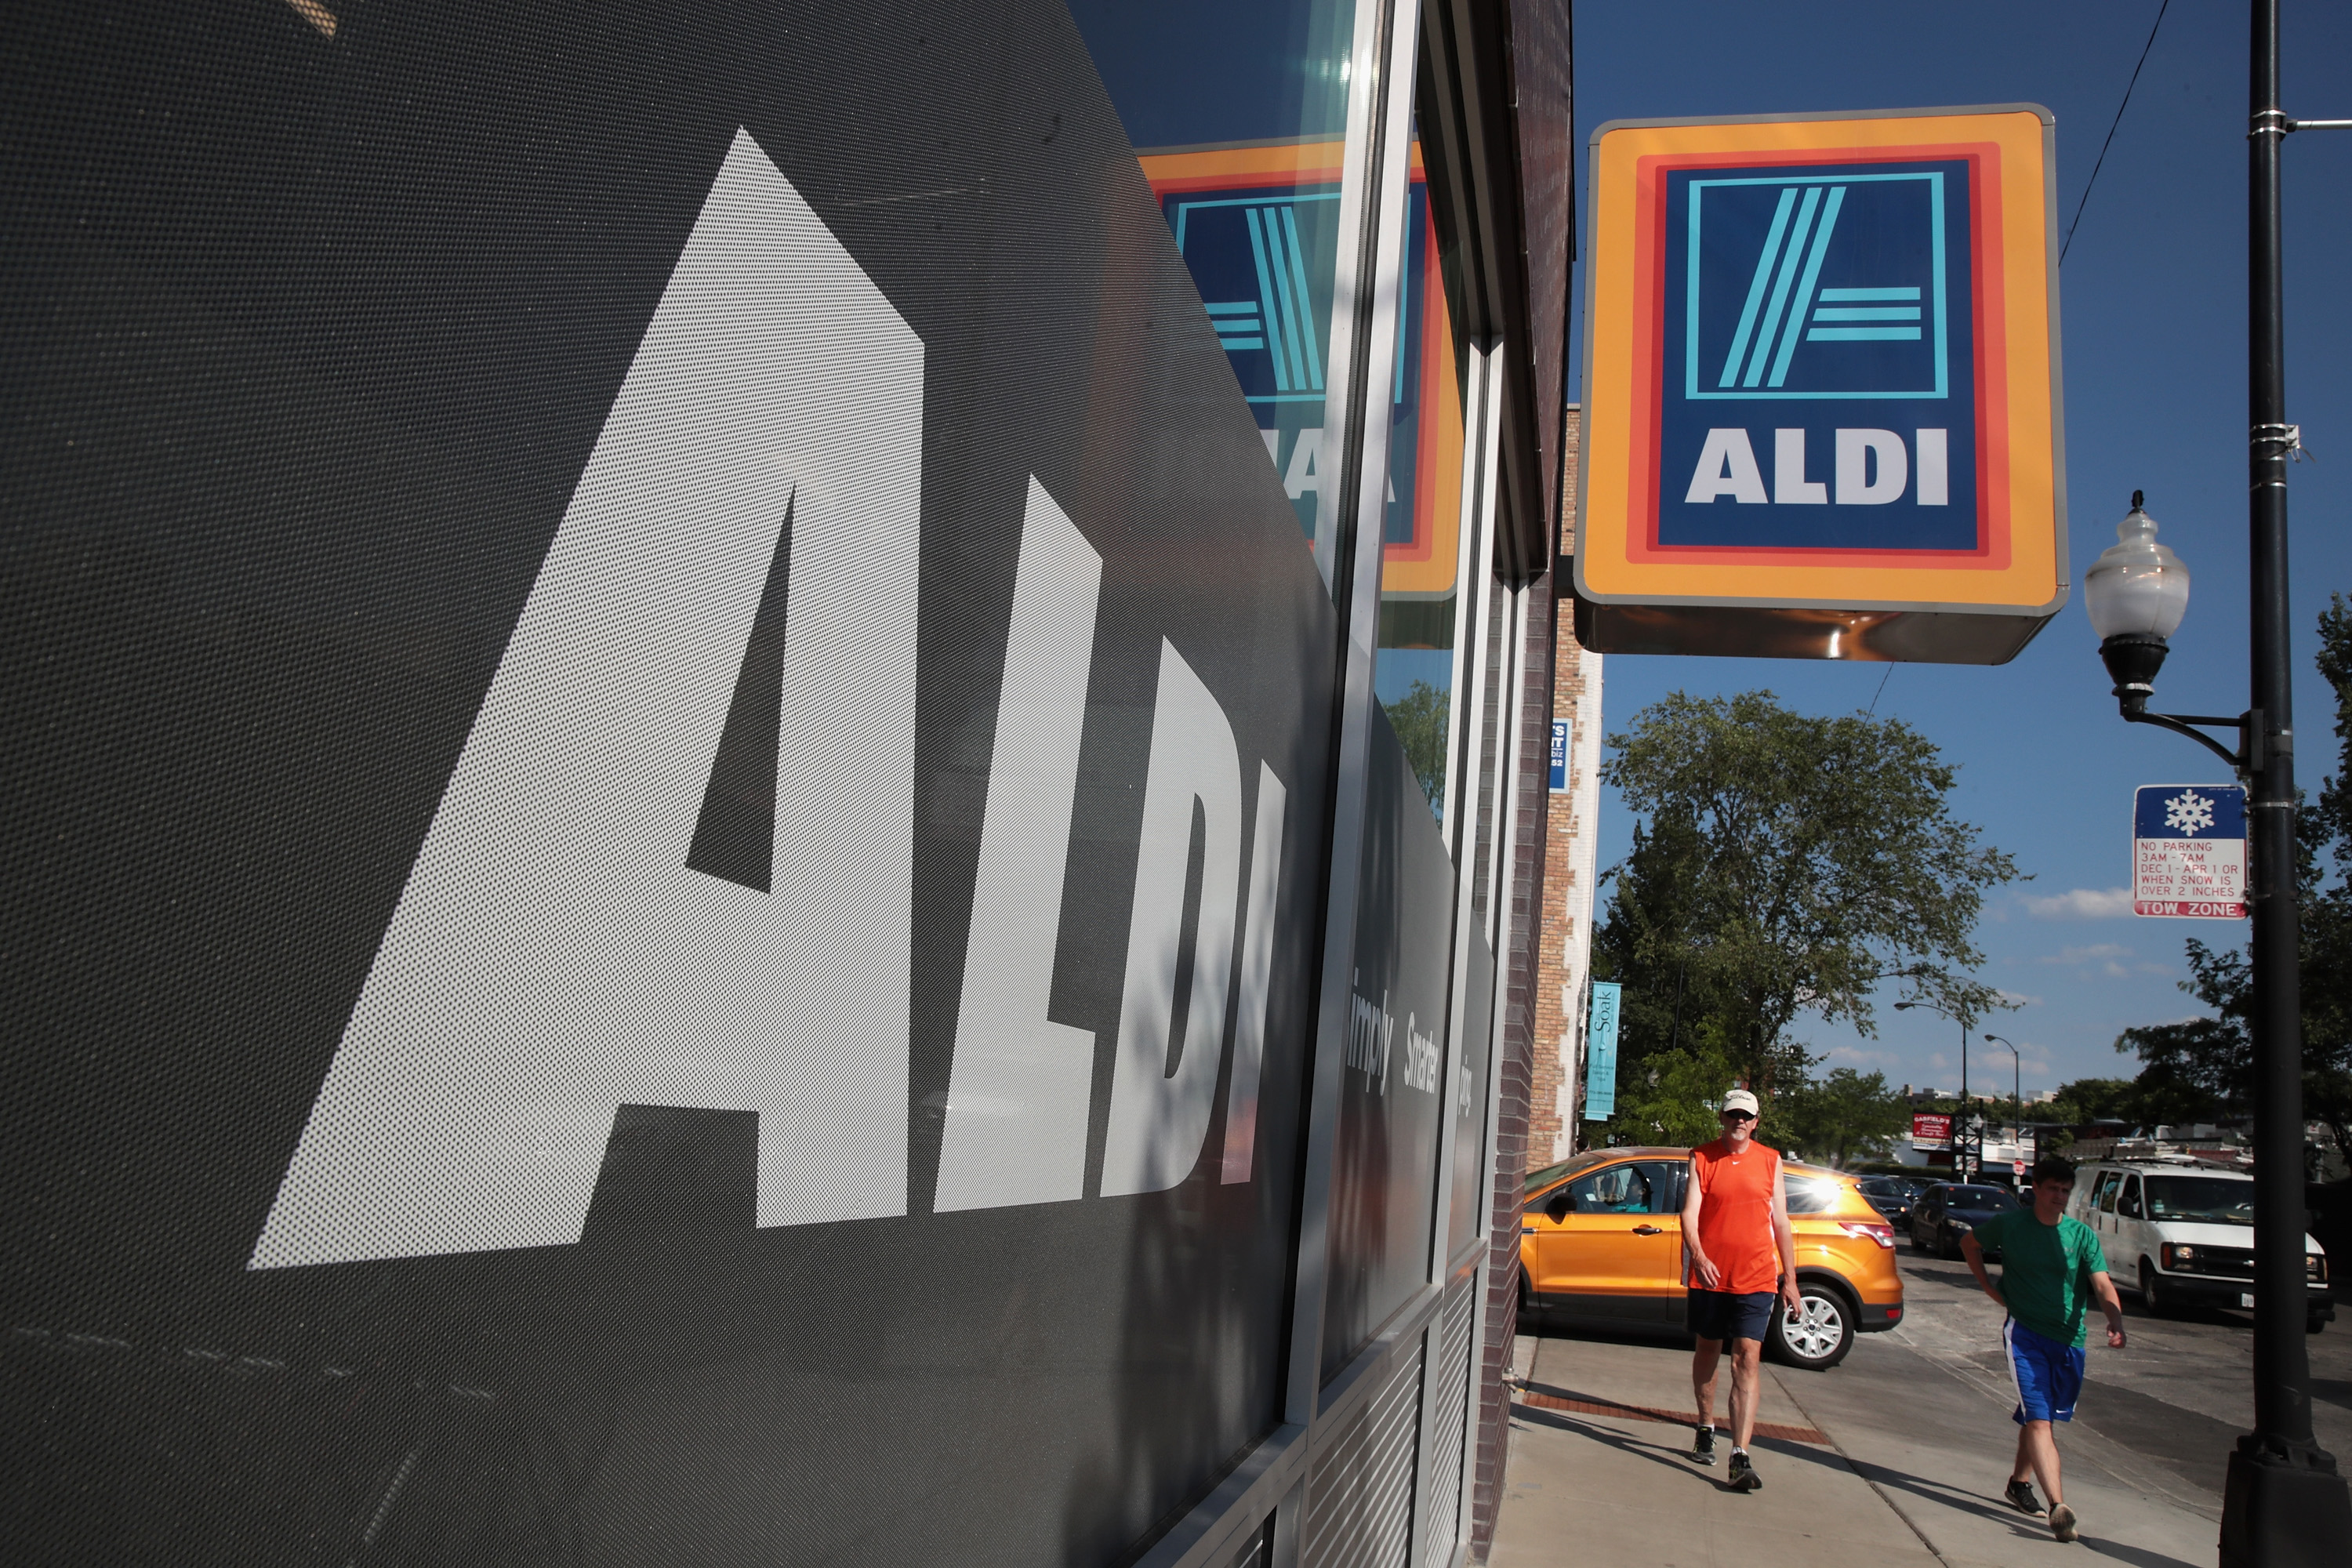 German Grocery Chain Aldi To Invest $3.4 Billion Into U.S. Stores